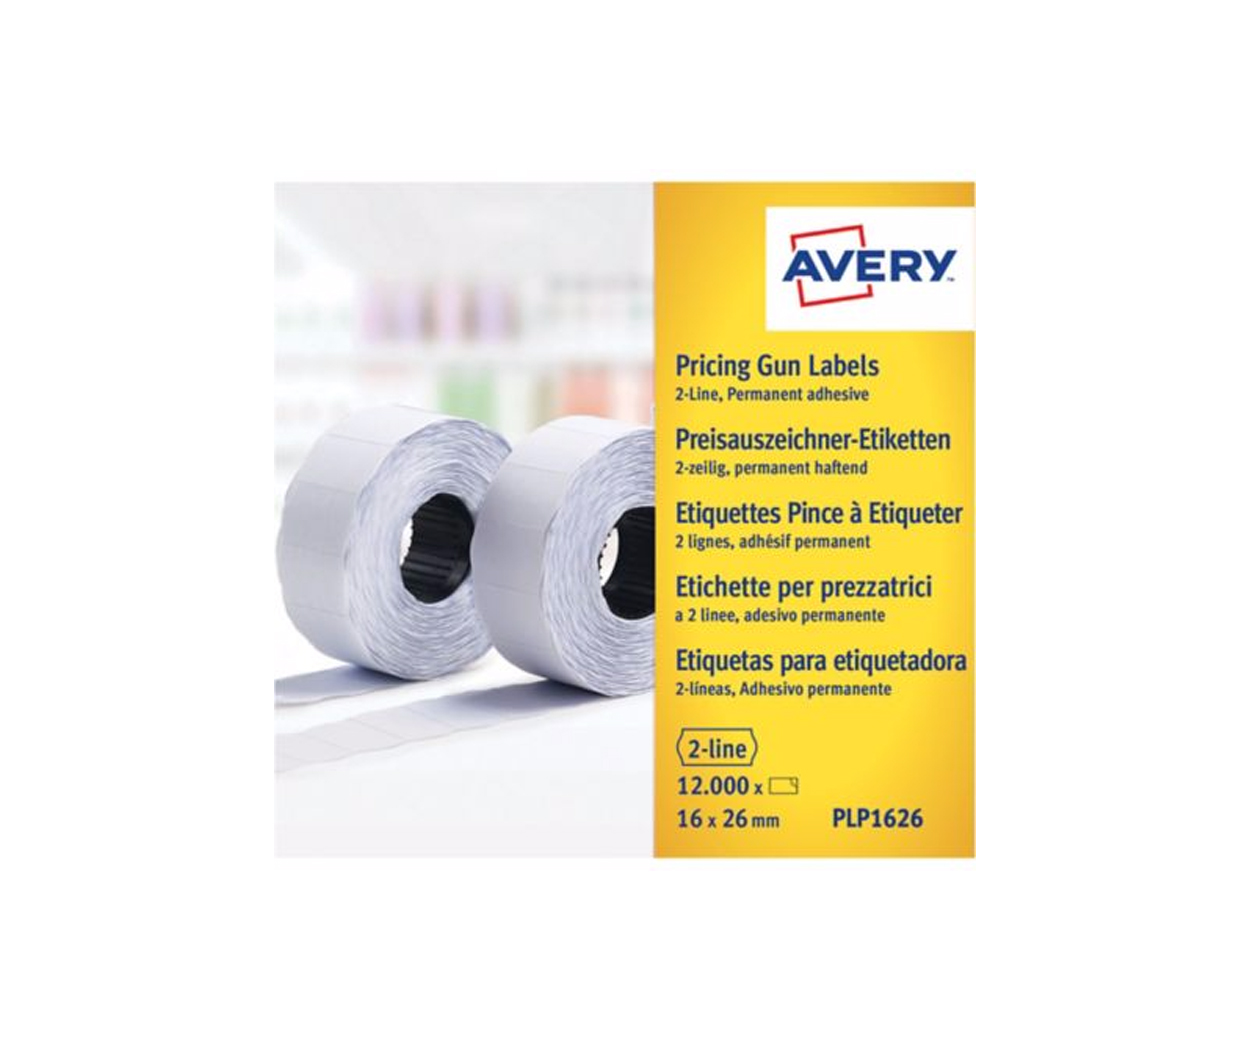 Avery Pricing Gun Labels 16 x 26mm - Pack of 1